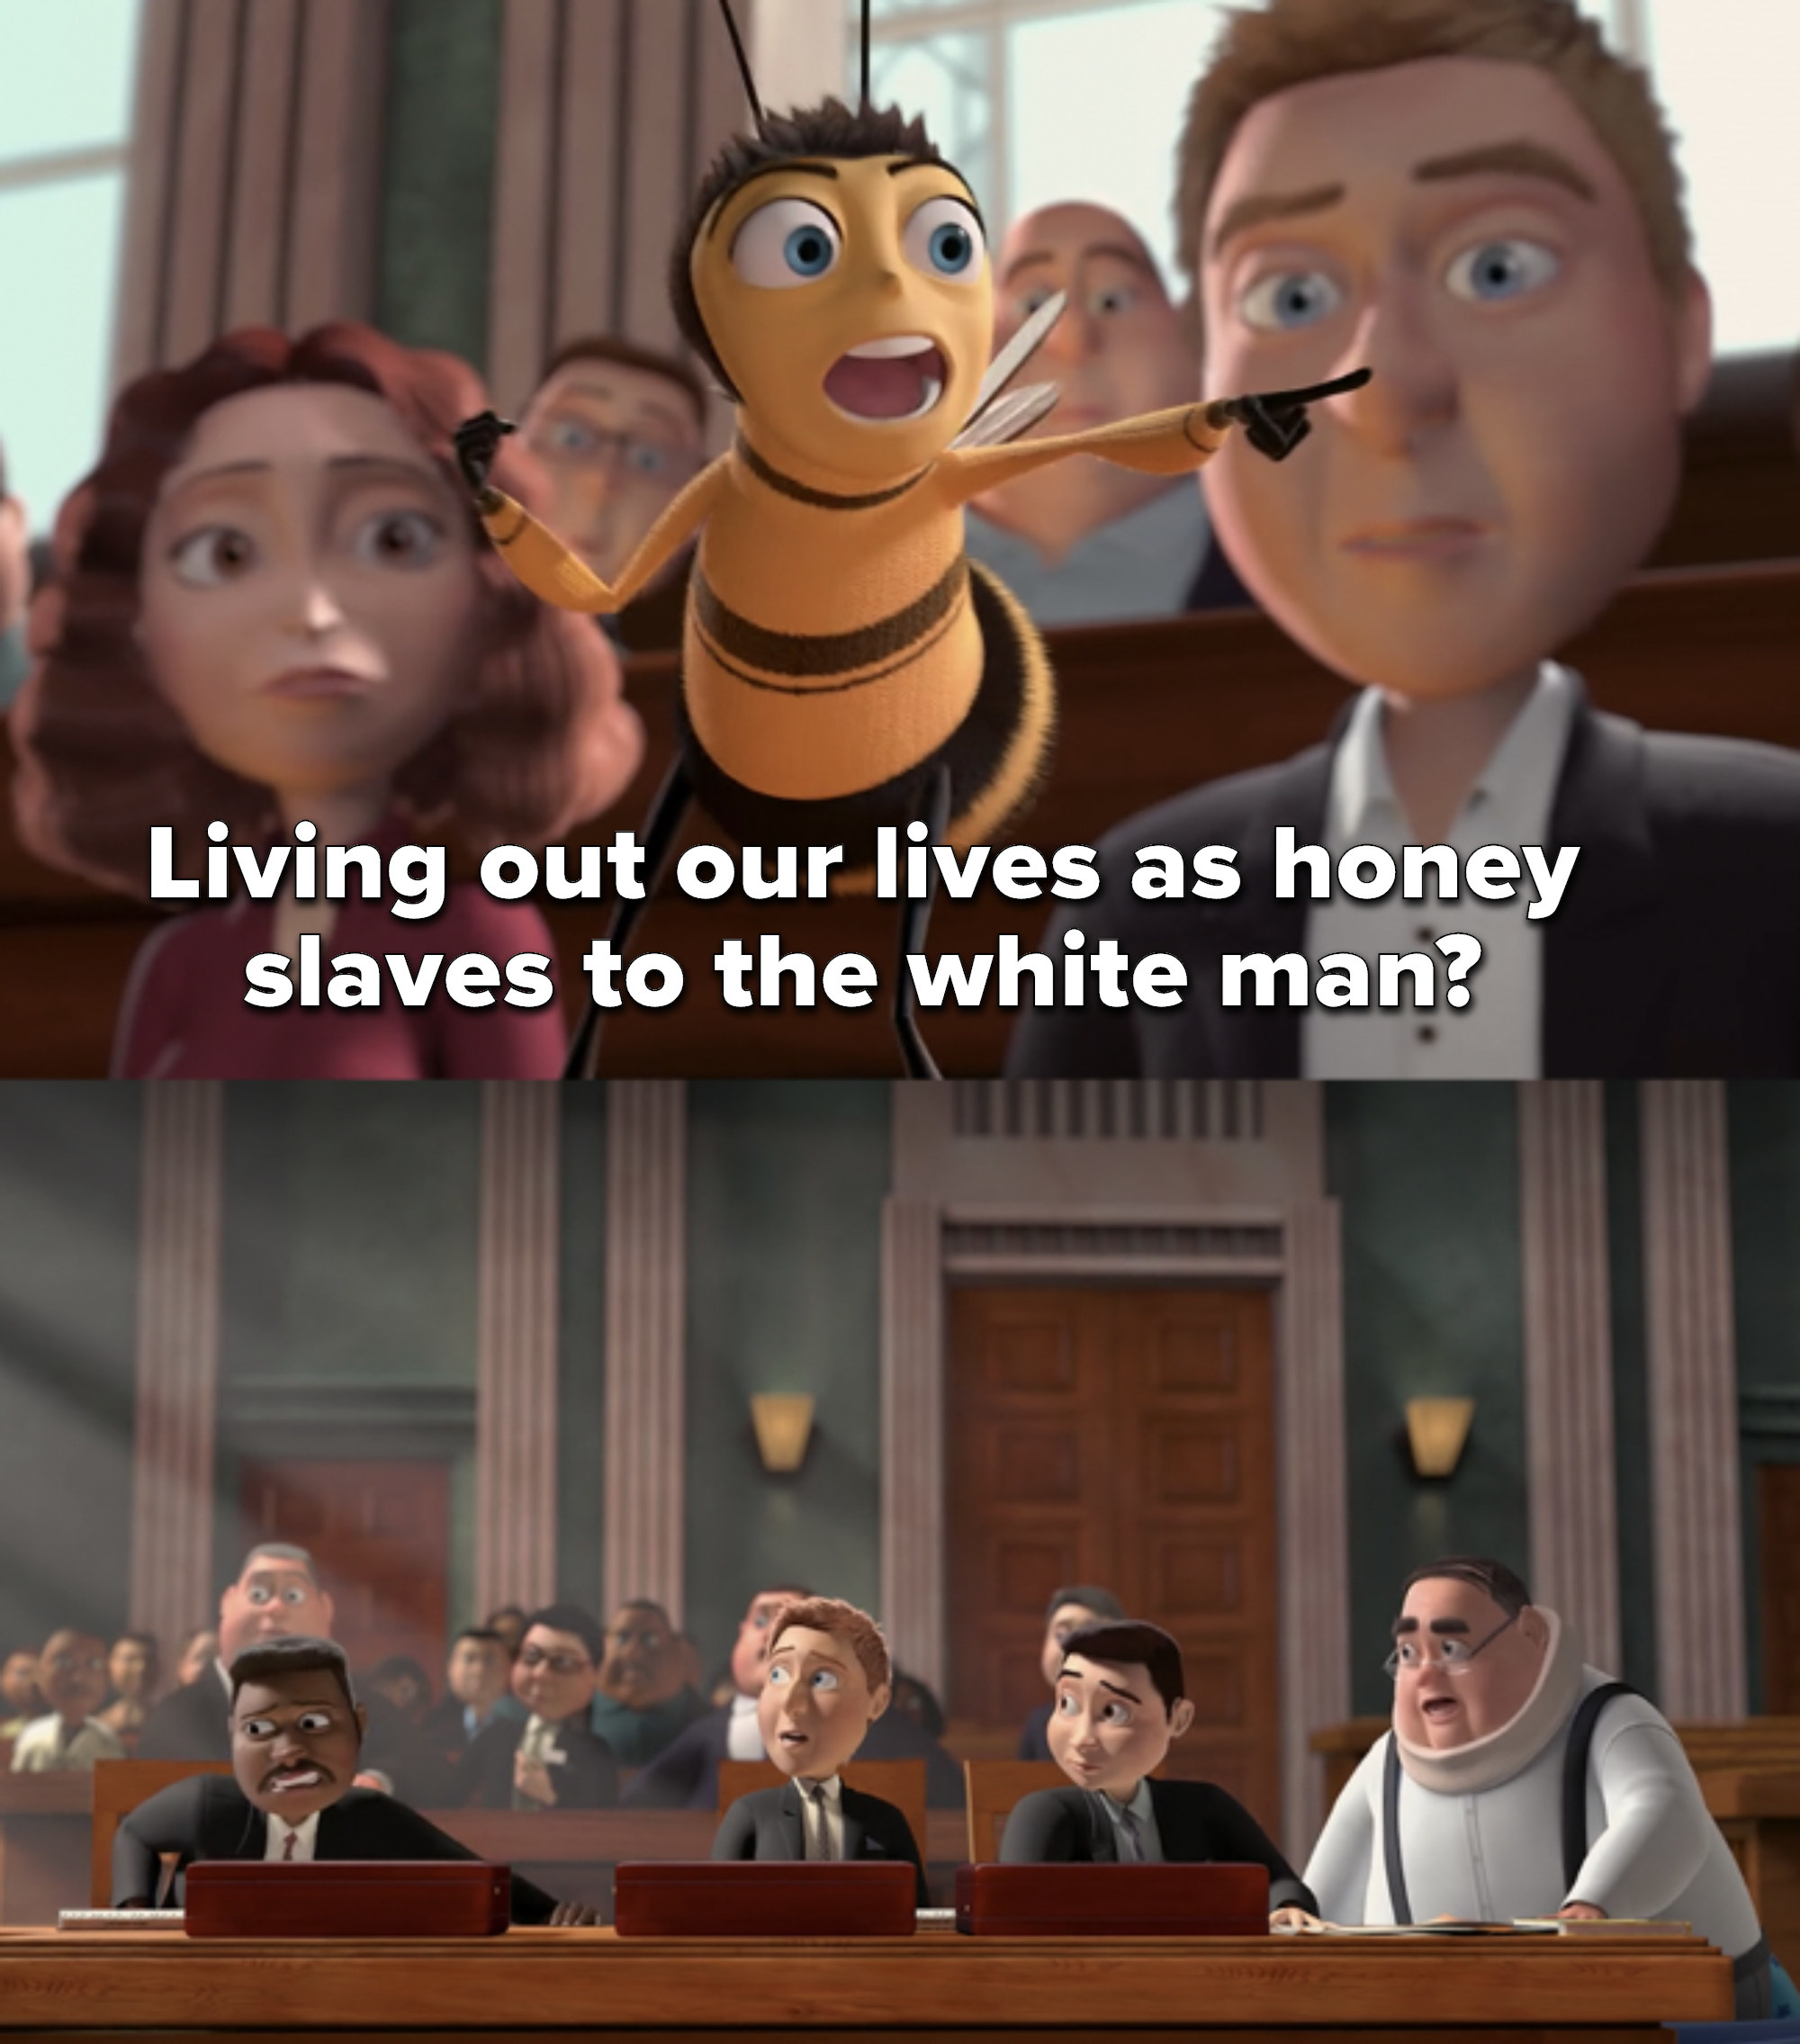 Barry asks if bees should spend their lives as slaves to the white man and points at lawyers